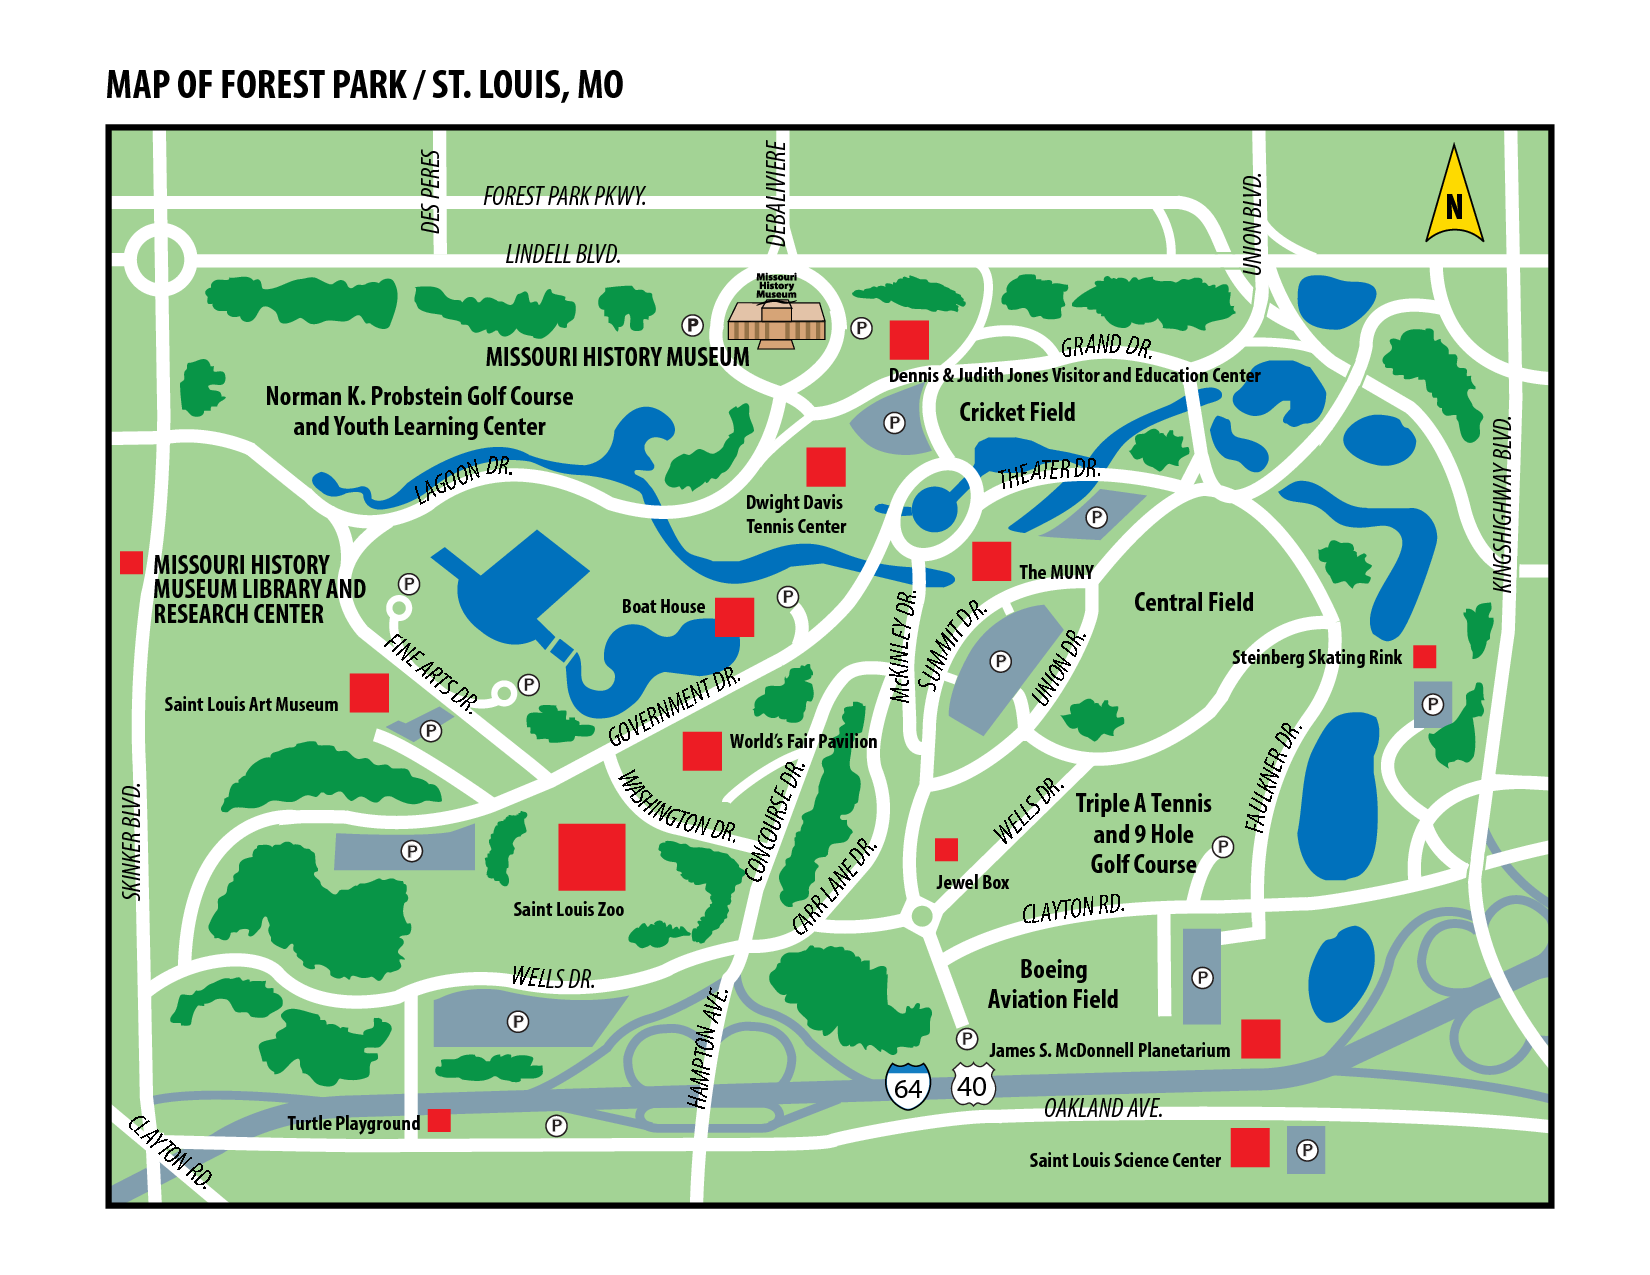 Forest Park St Louis Map Map of Forest Park in St. Louis, Missouri | St. Louis, Missouri  Forest Park St Louis Map